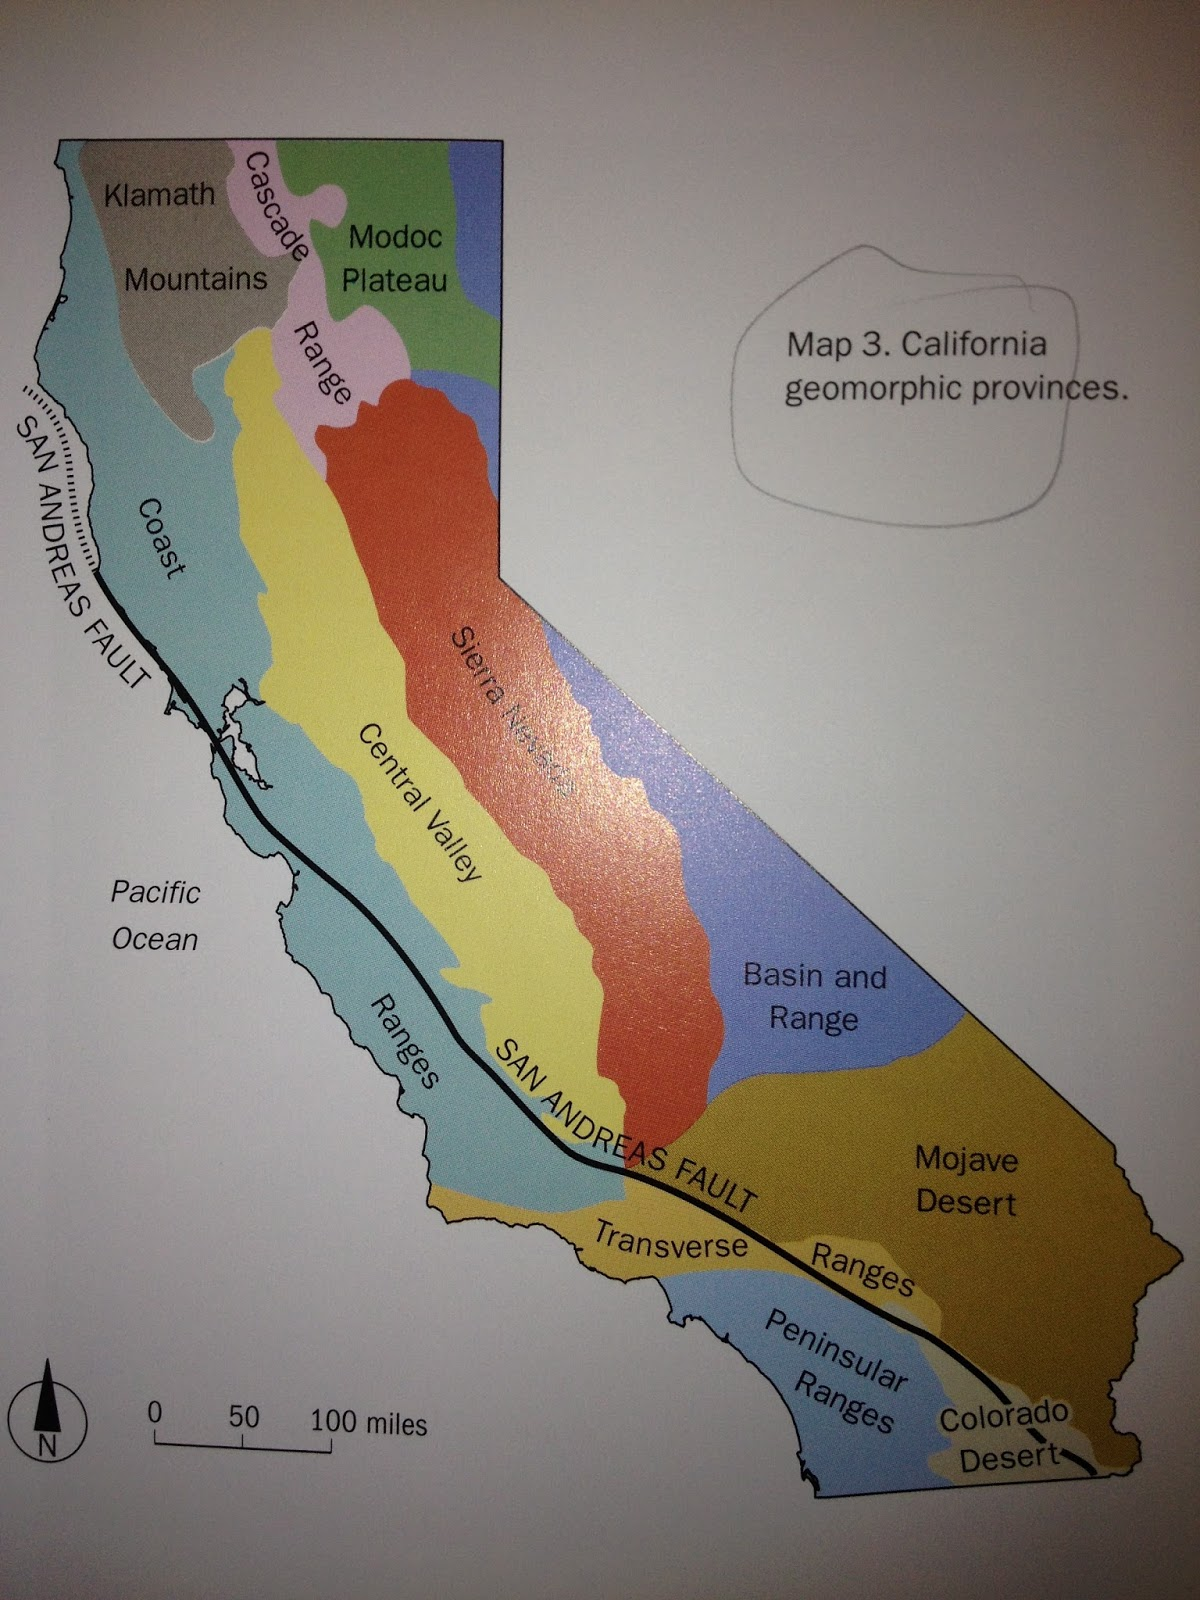 the san andreas fault passes exclusively through the coast ranges in northern ca image taken from geology of the san francisco bay region by